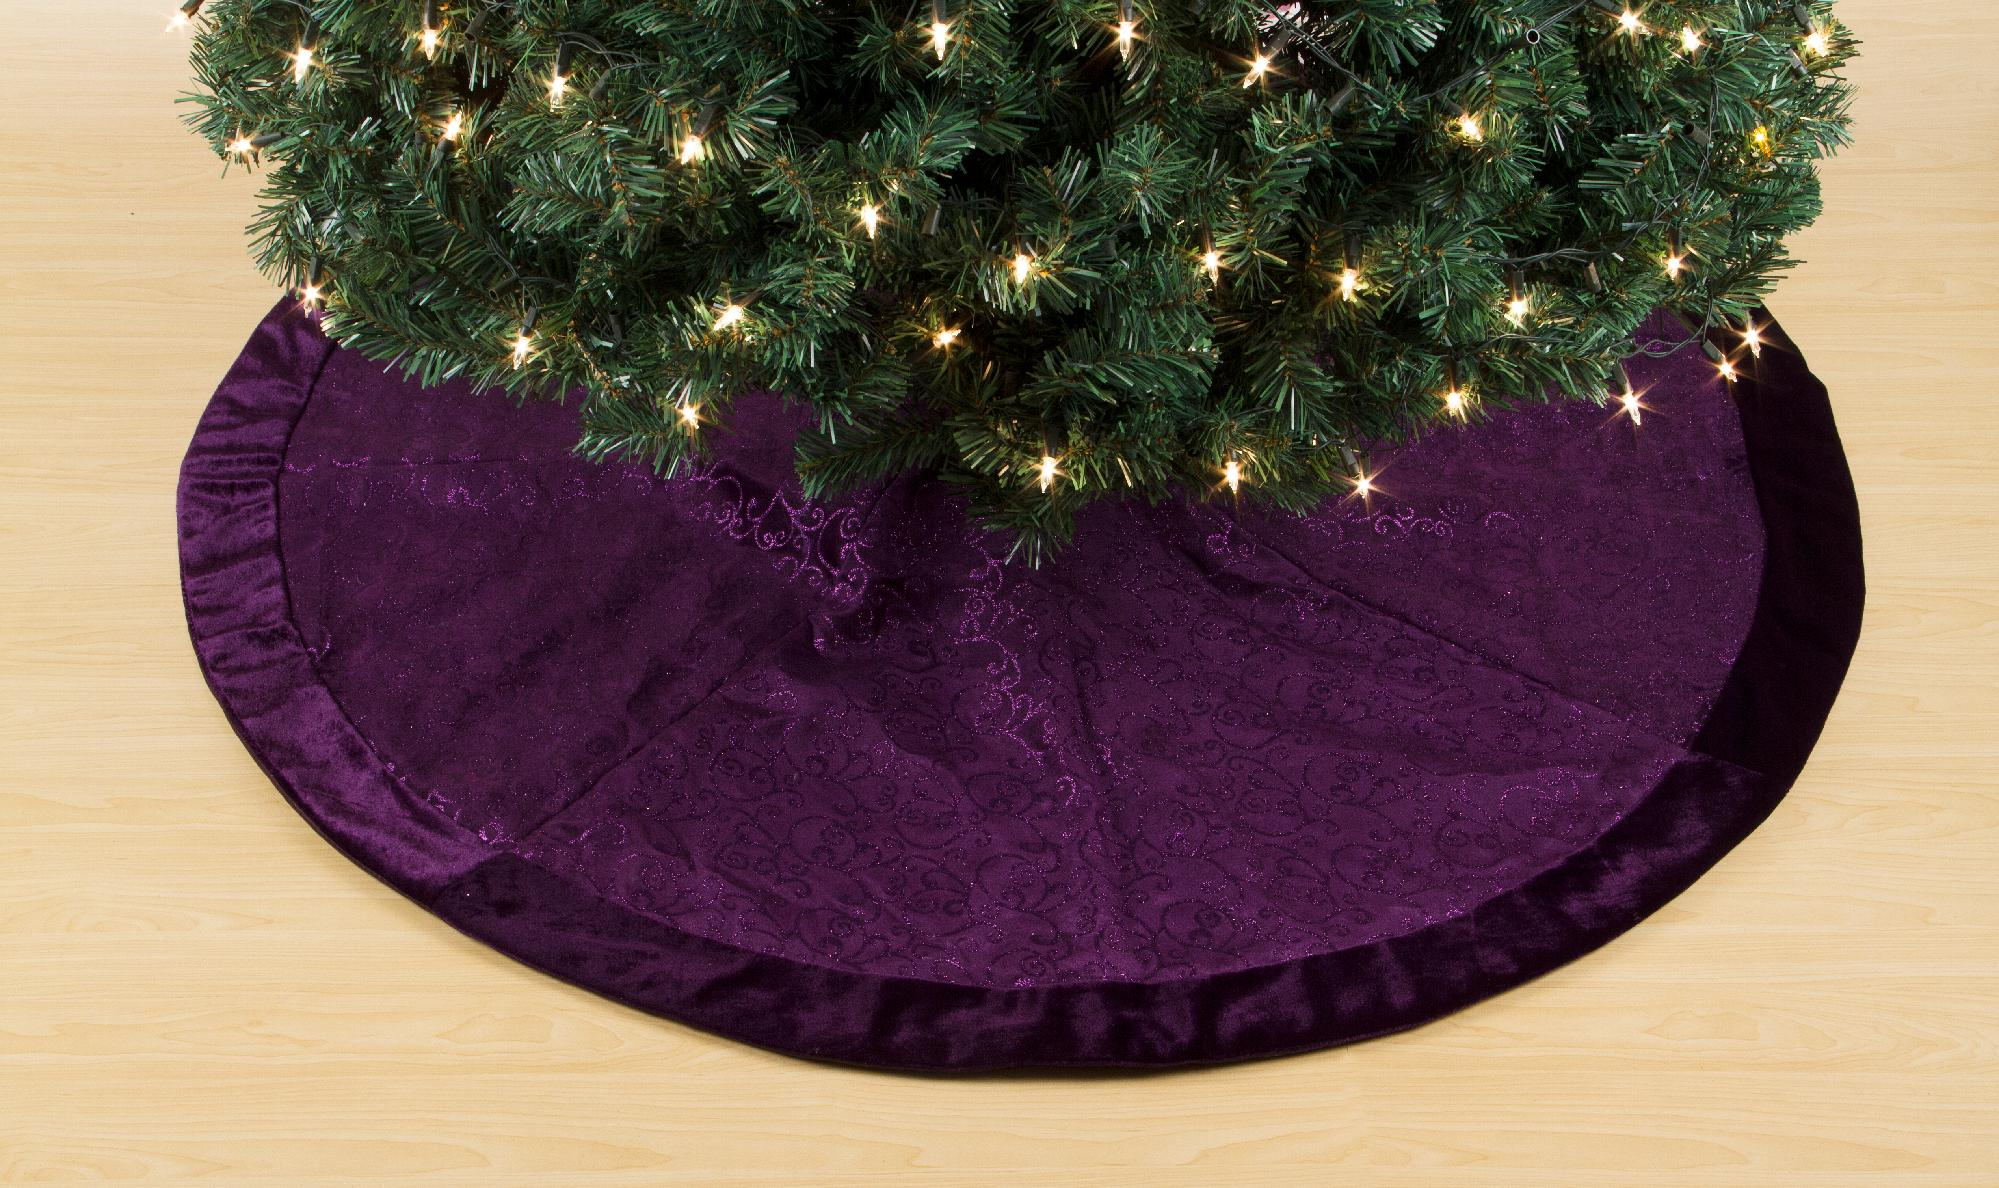 Trim A Home Trim A Home 50in Tree Skirt Seasonal